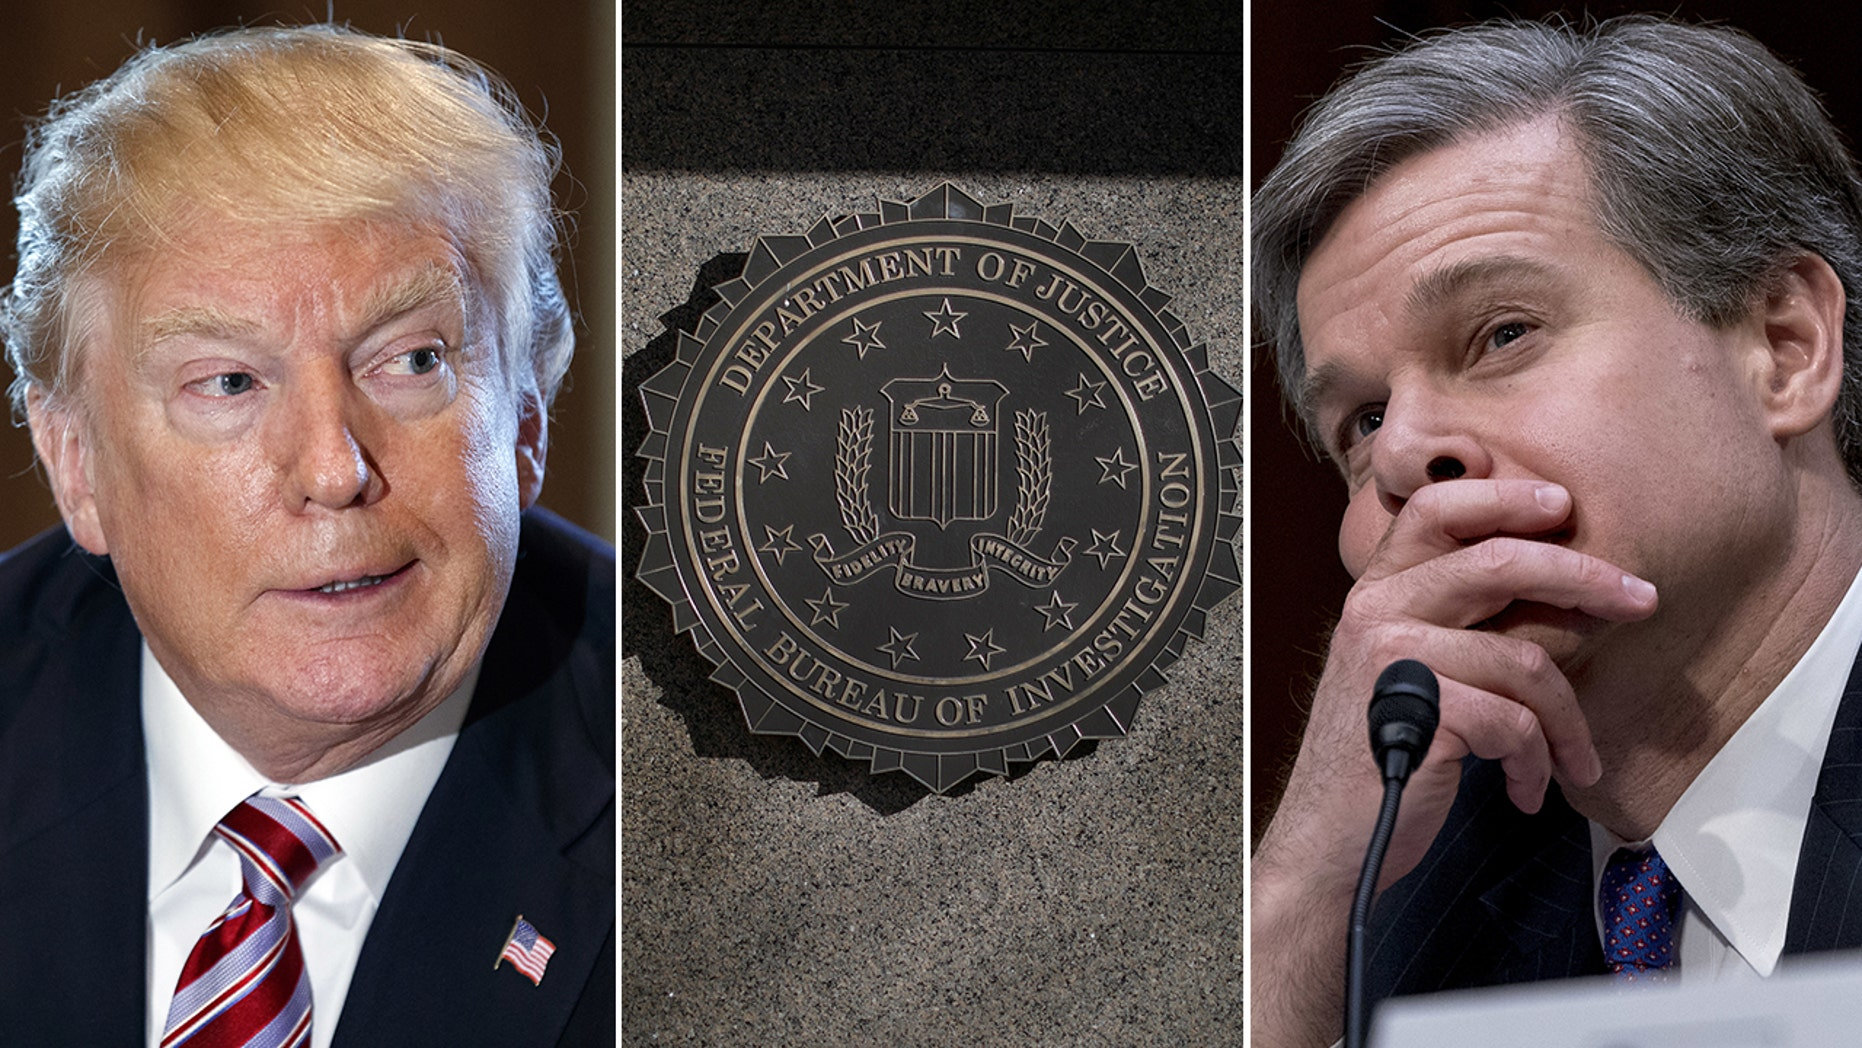 President Donald Trump and other Republicans have been sharply critical of the FBI in recent months. The agency is led by Director Christopher Wray, right, whom Trump appointed to succeed the fired James Comey.